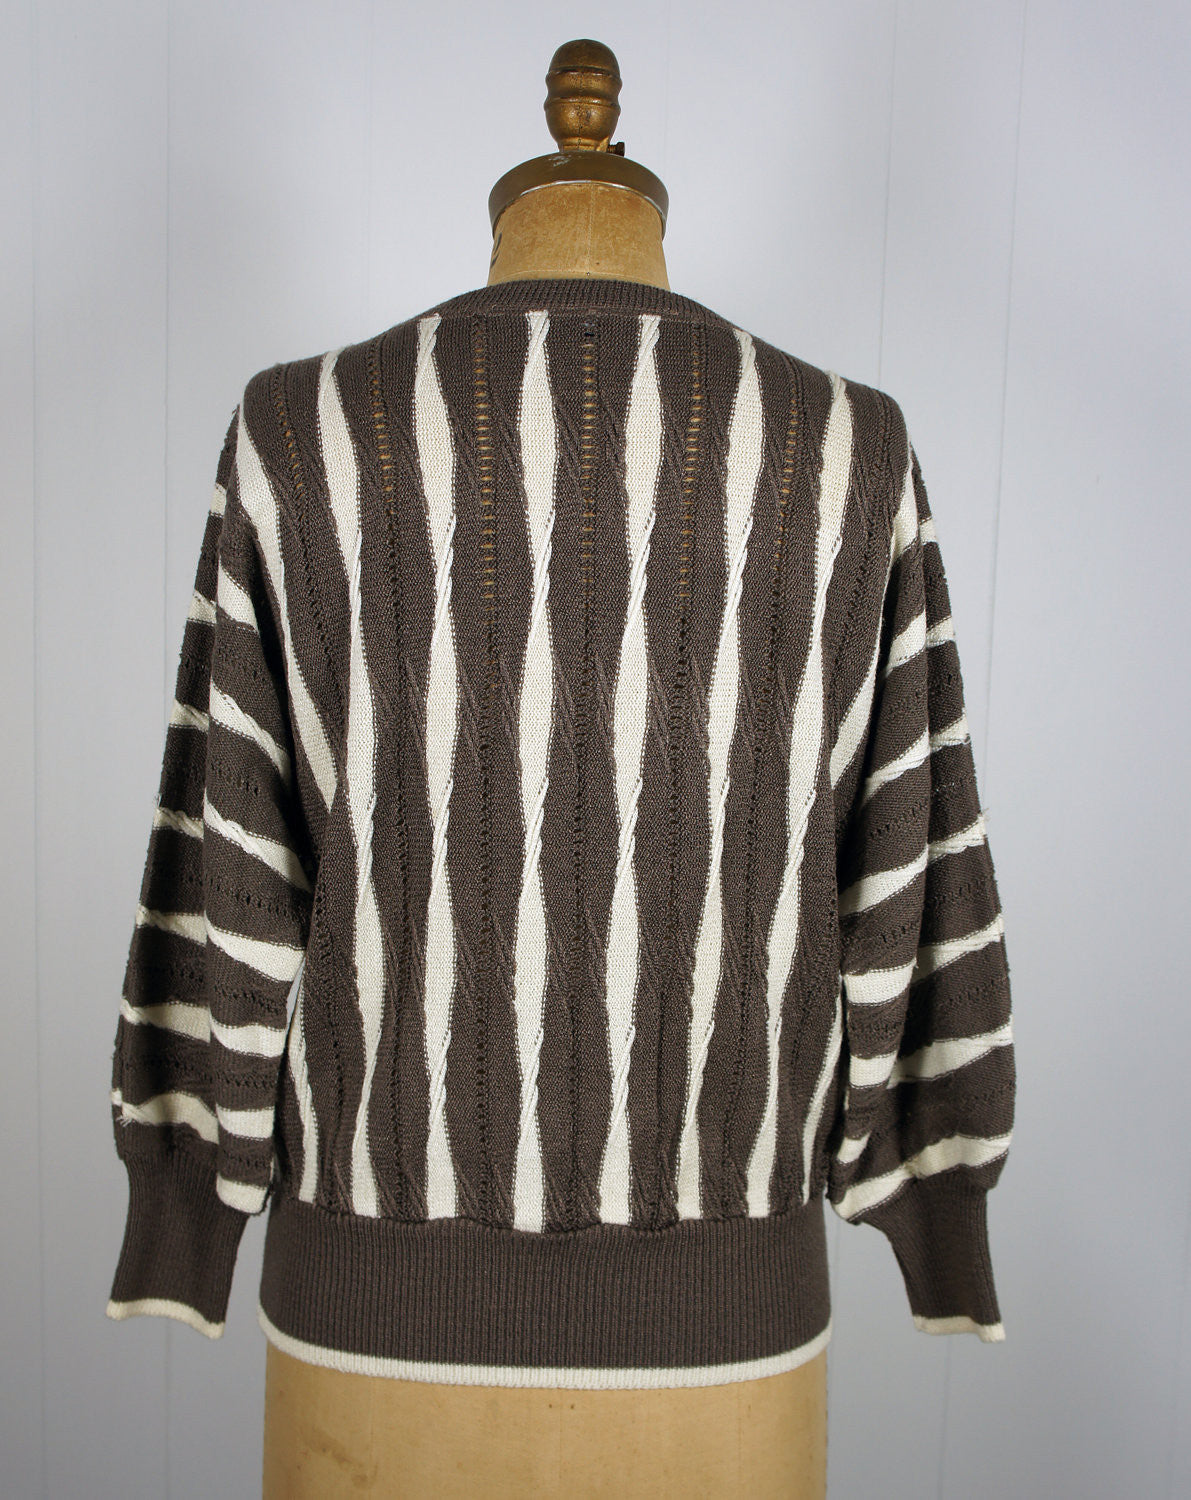 1980's Brown & White Striped Eyelet Knit Sweater, Size M / L